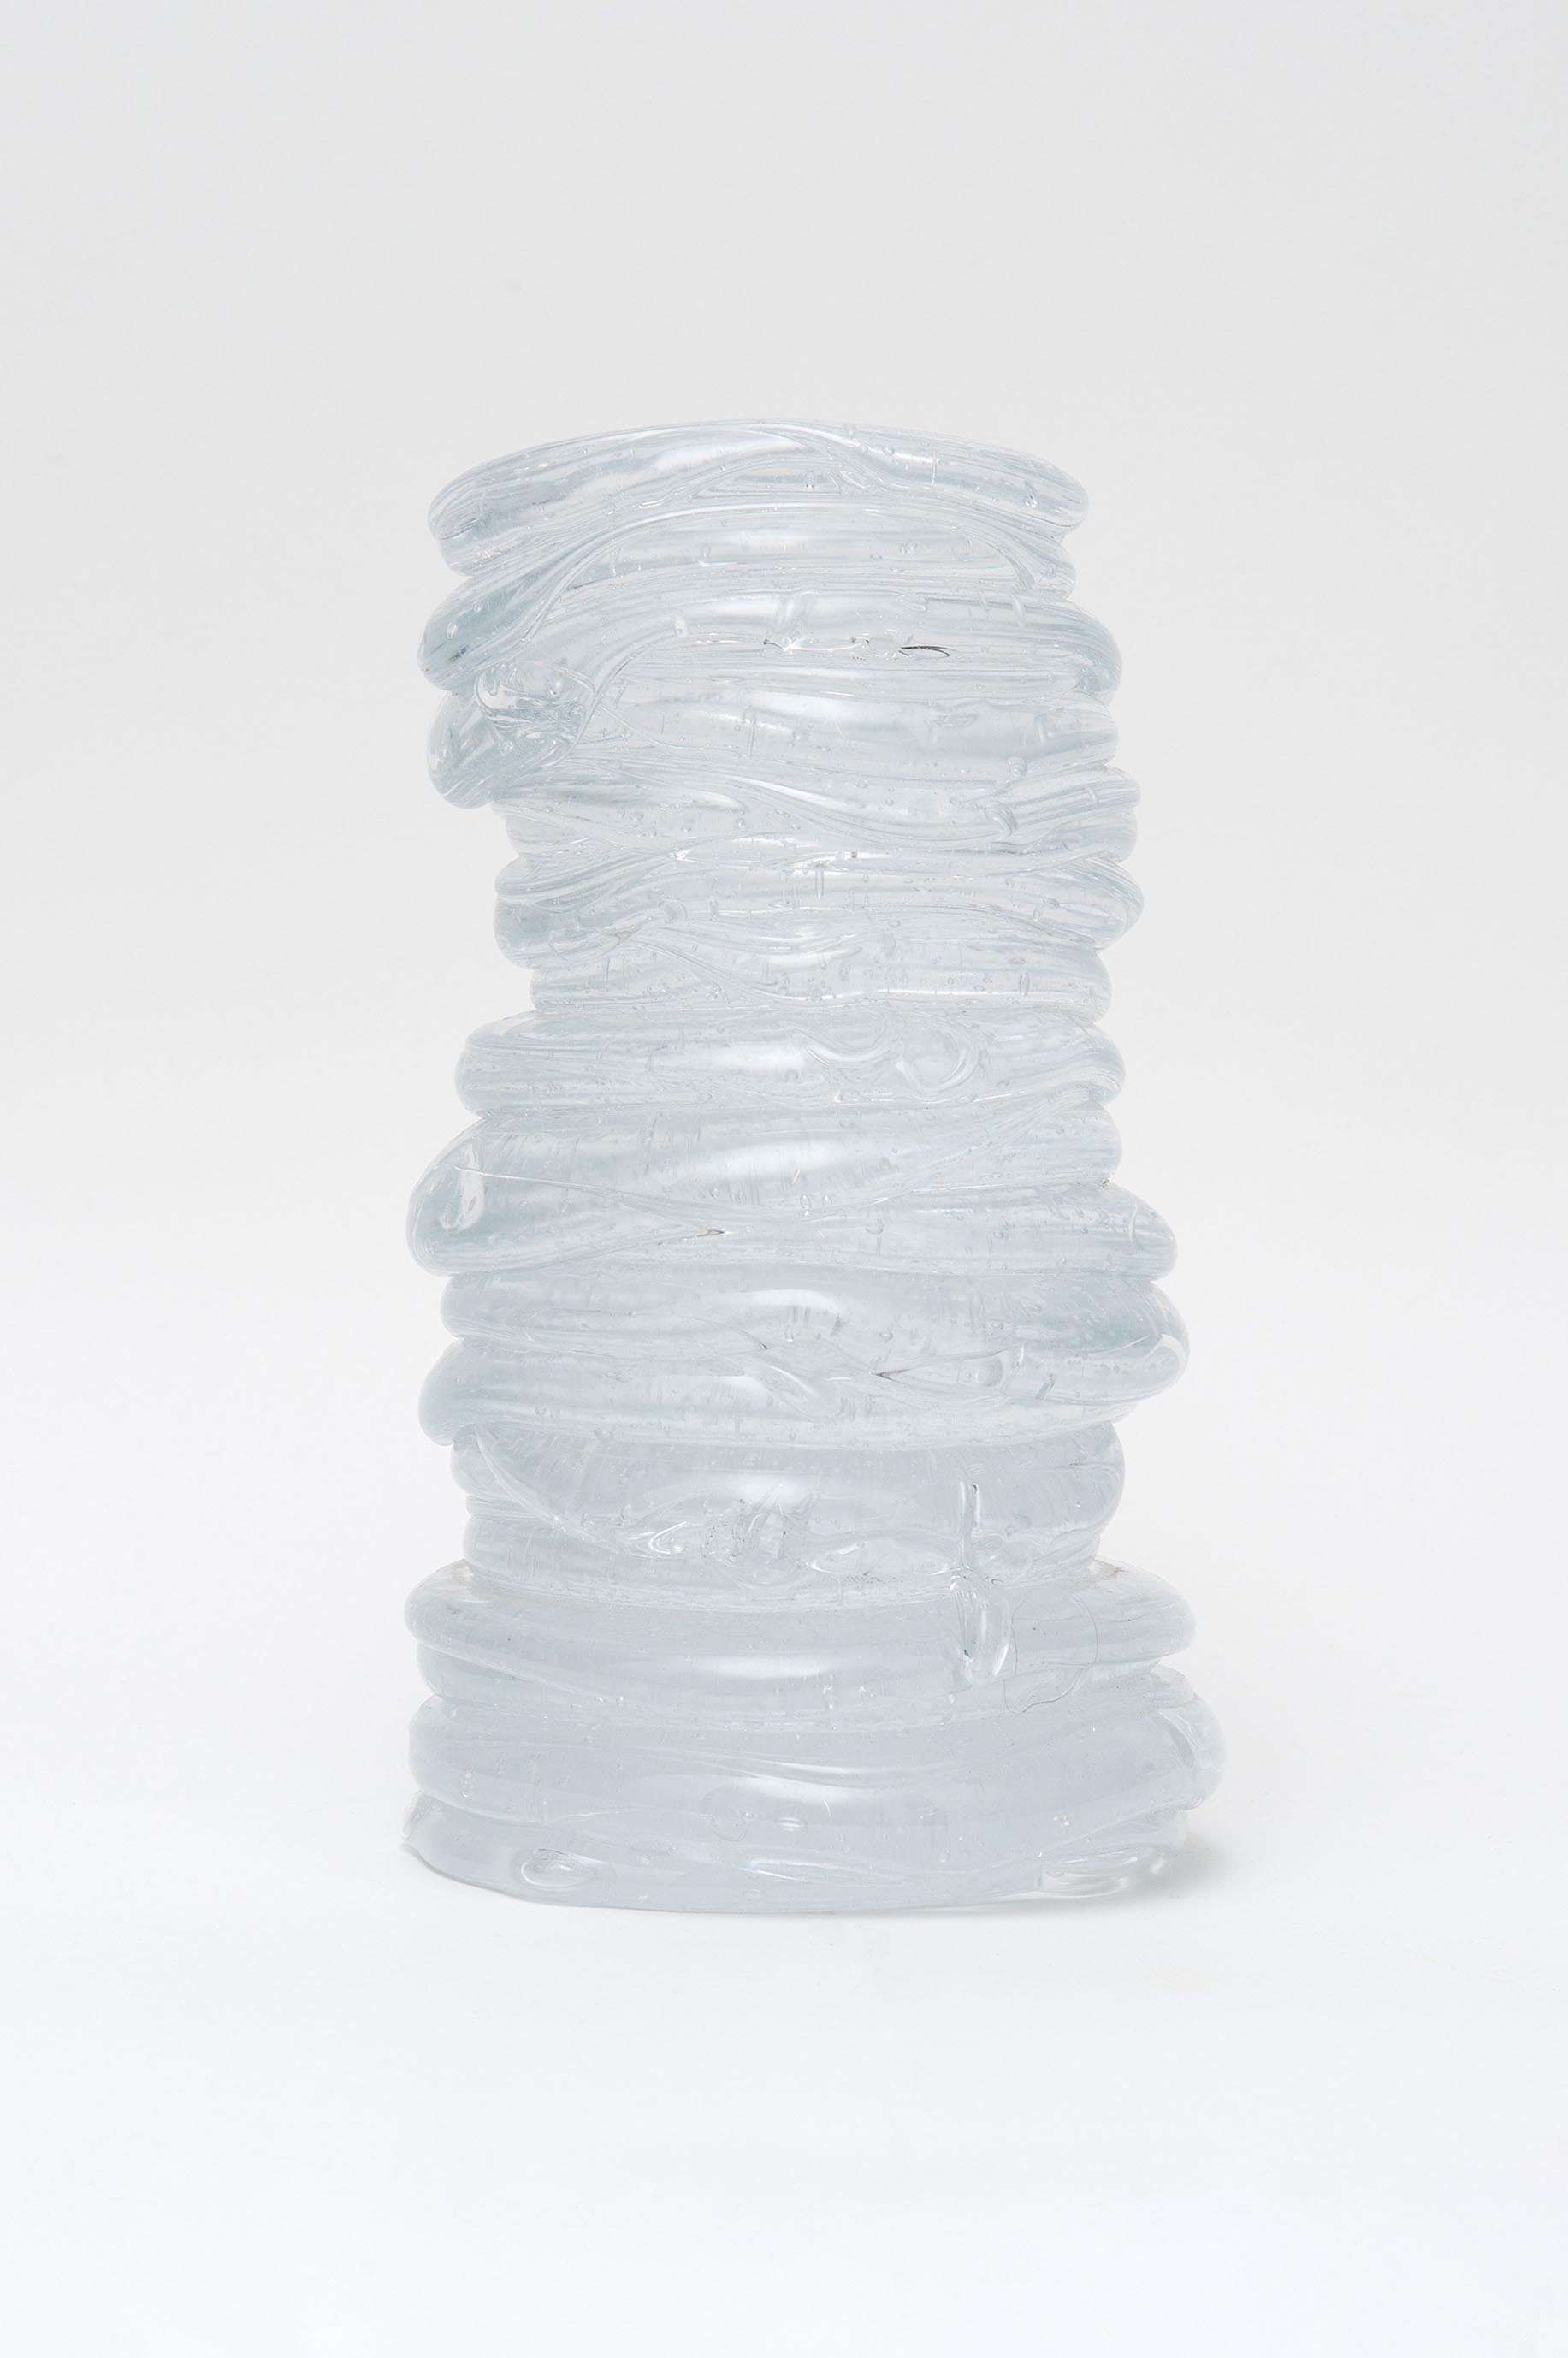 Glass No. 3 CAs, 2015